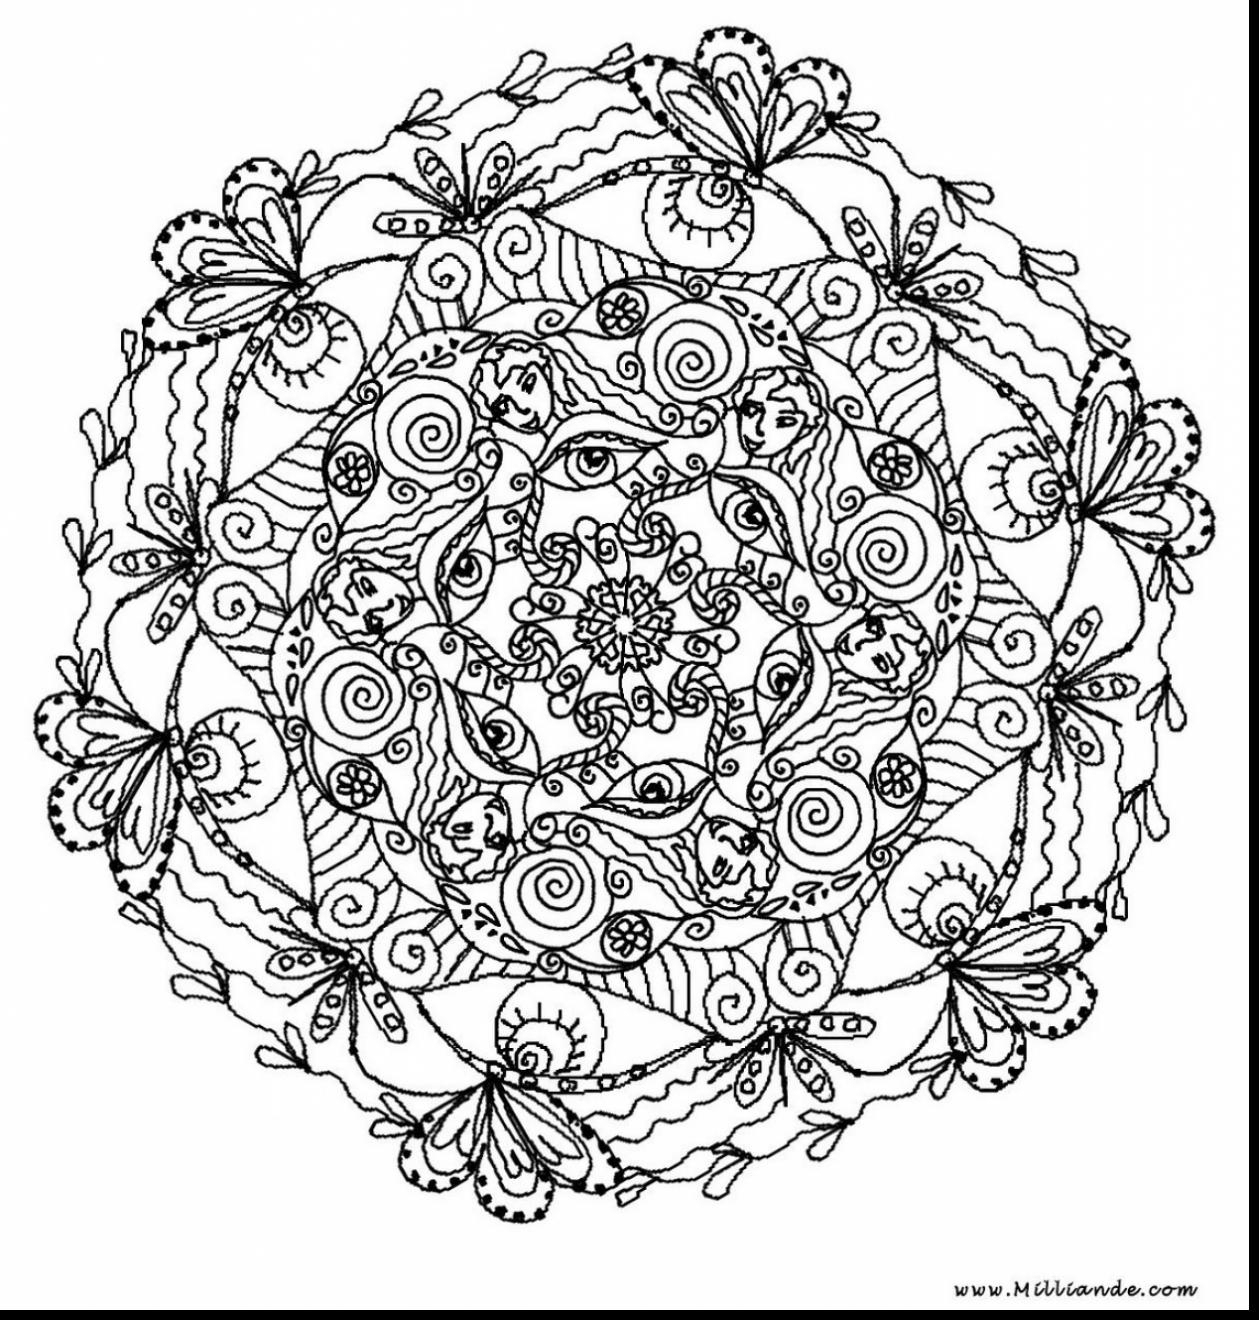 Fresh Magnificent Printable Mandala Coloring Pages Adults With Hard - Free Printable Mandala Coloring Pages For Adults